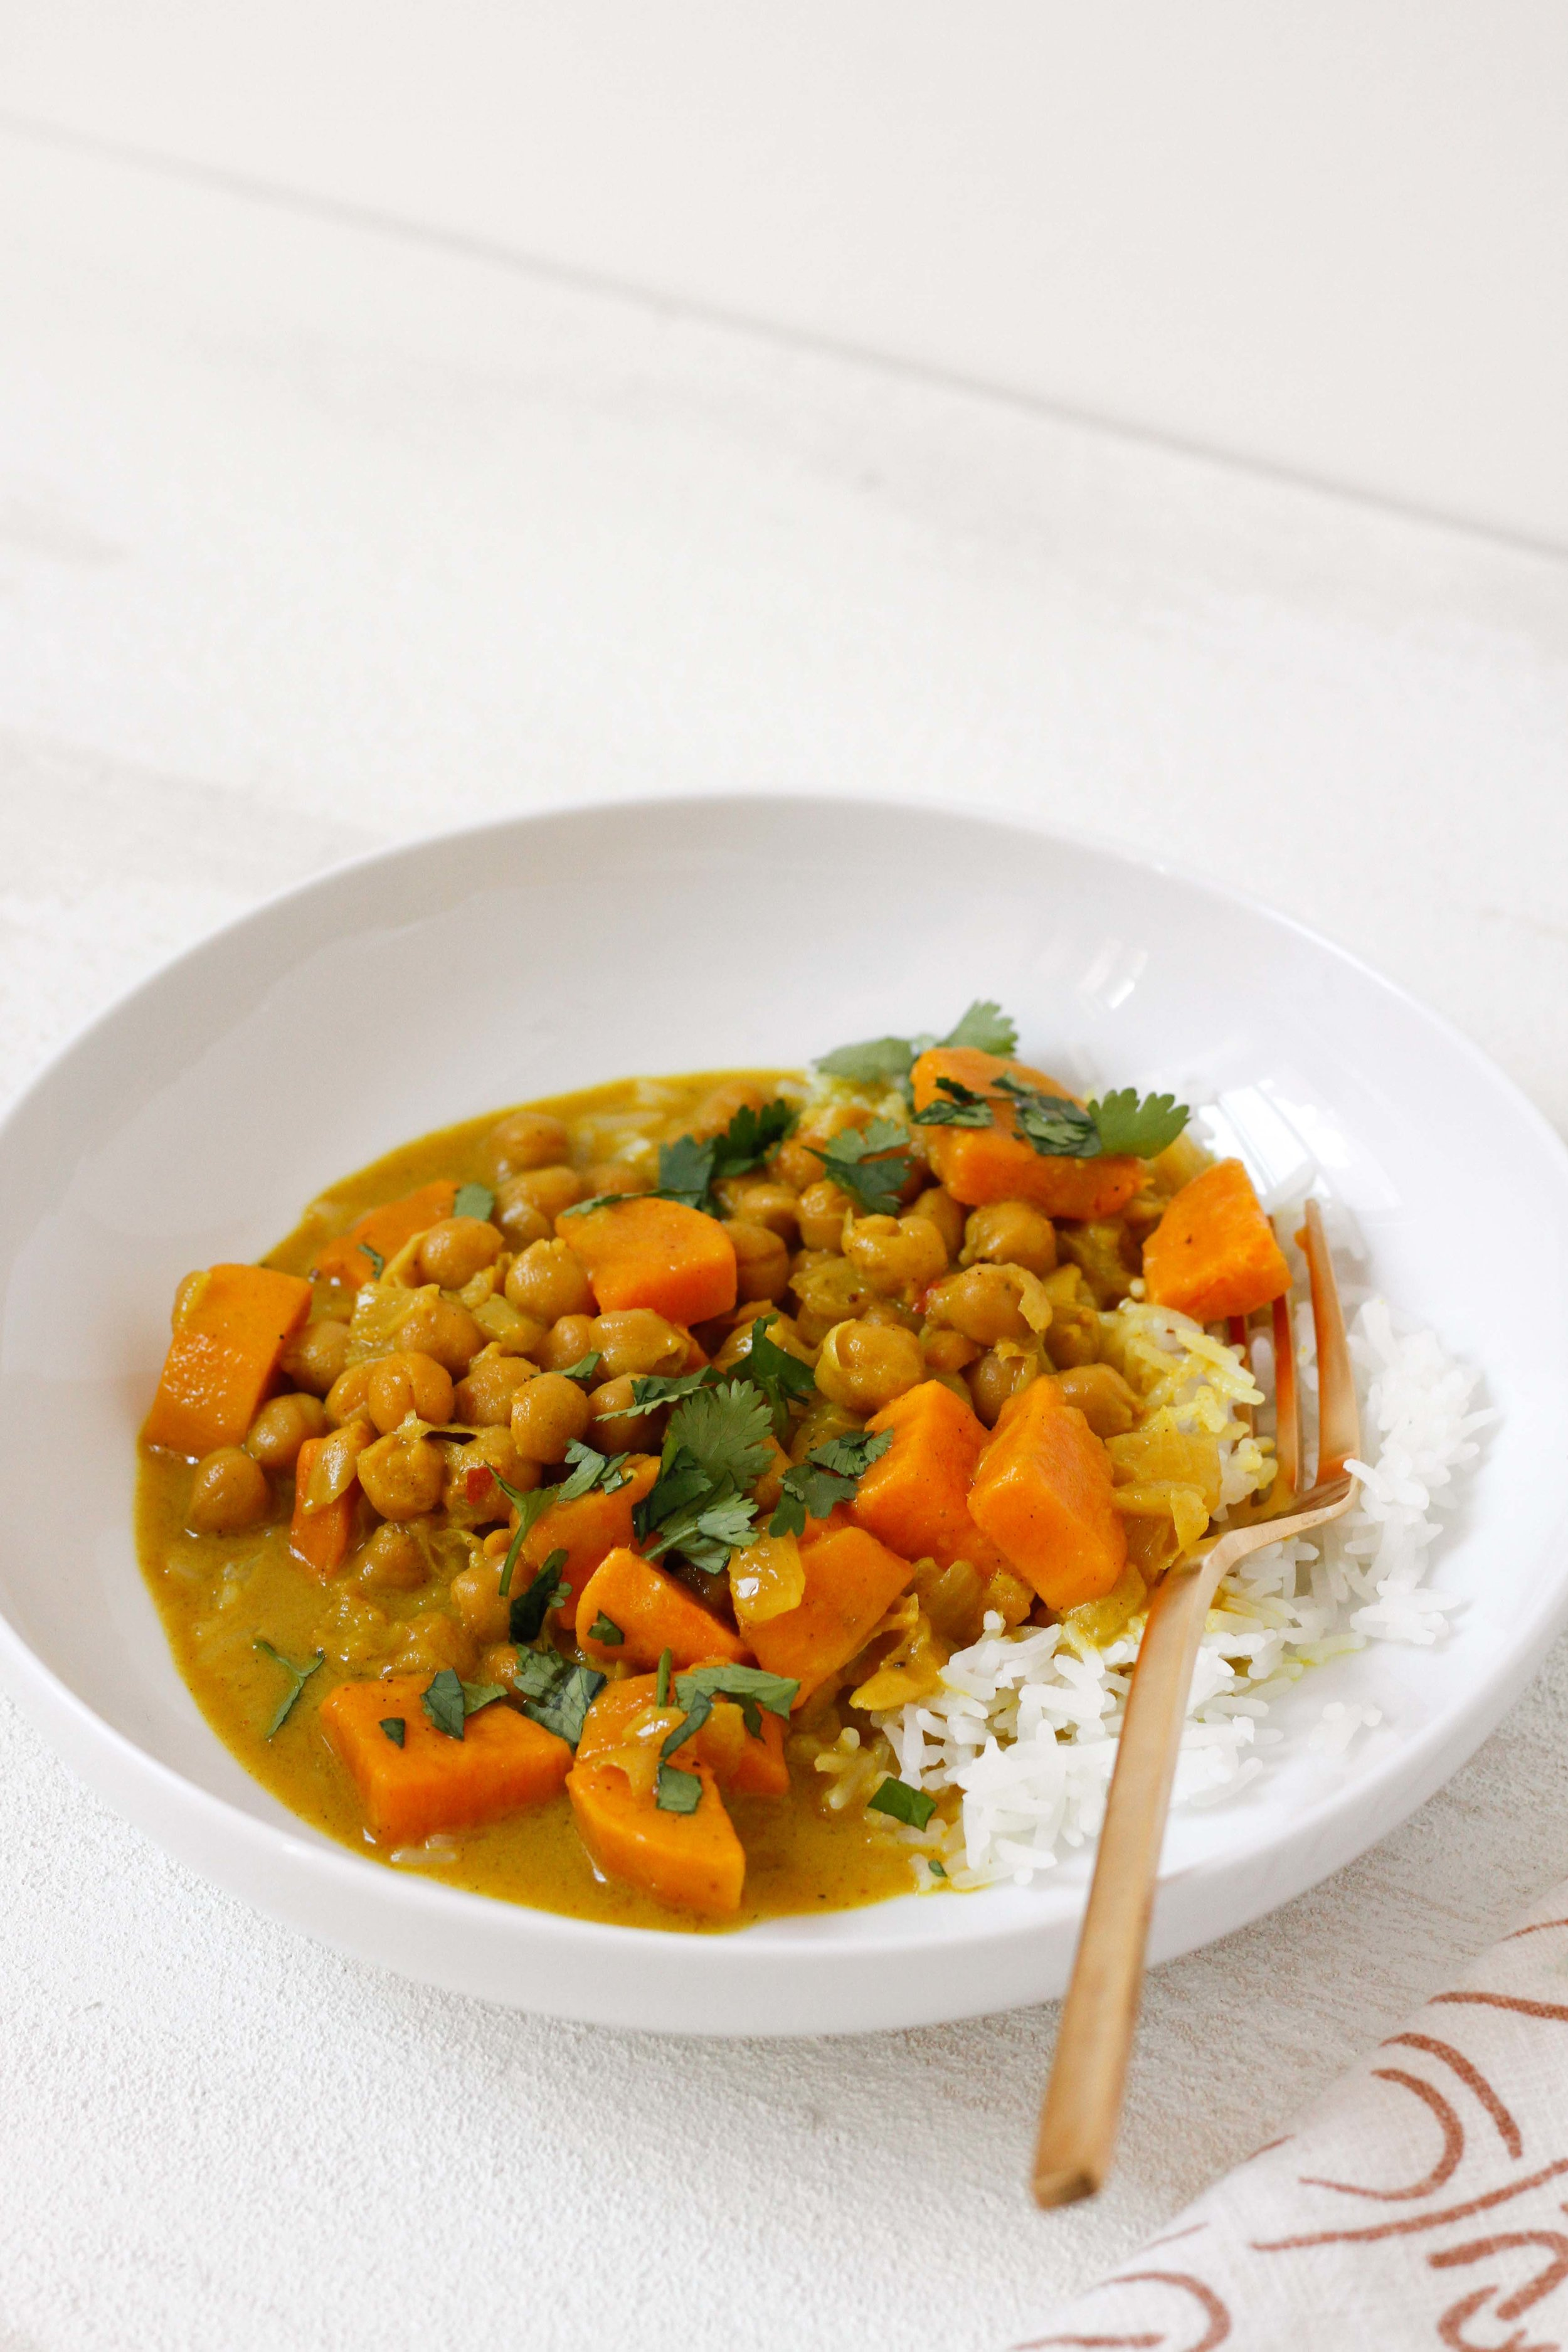 Simmered chickpea and sweet potato curry